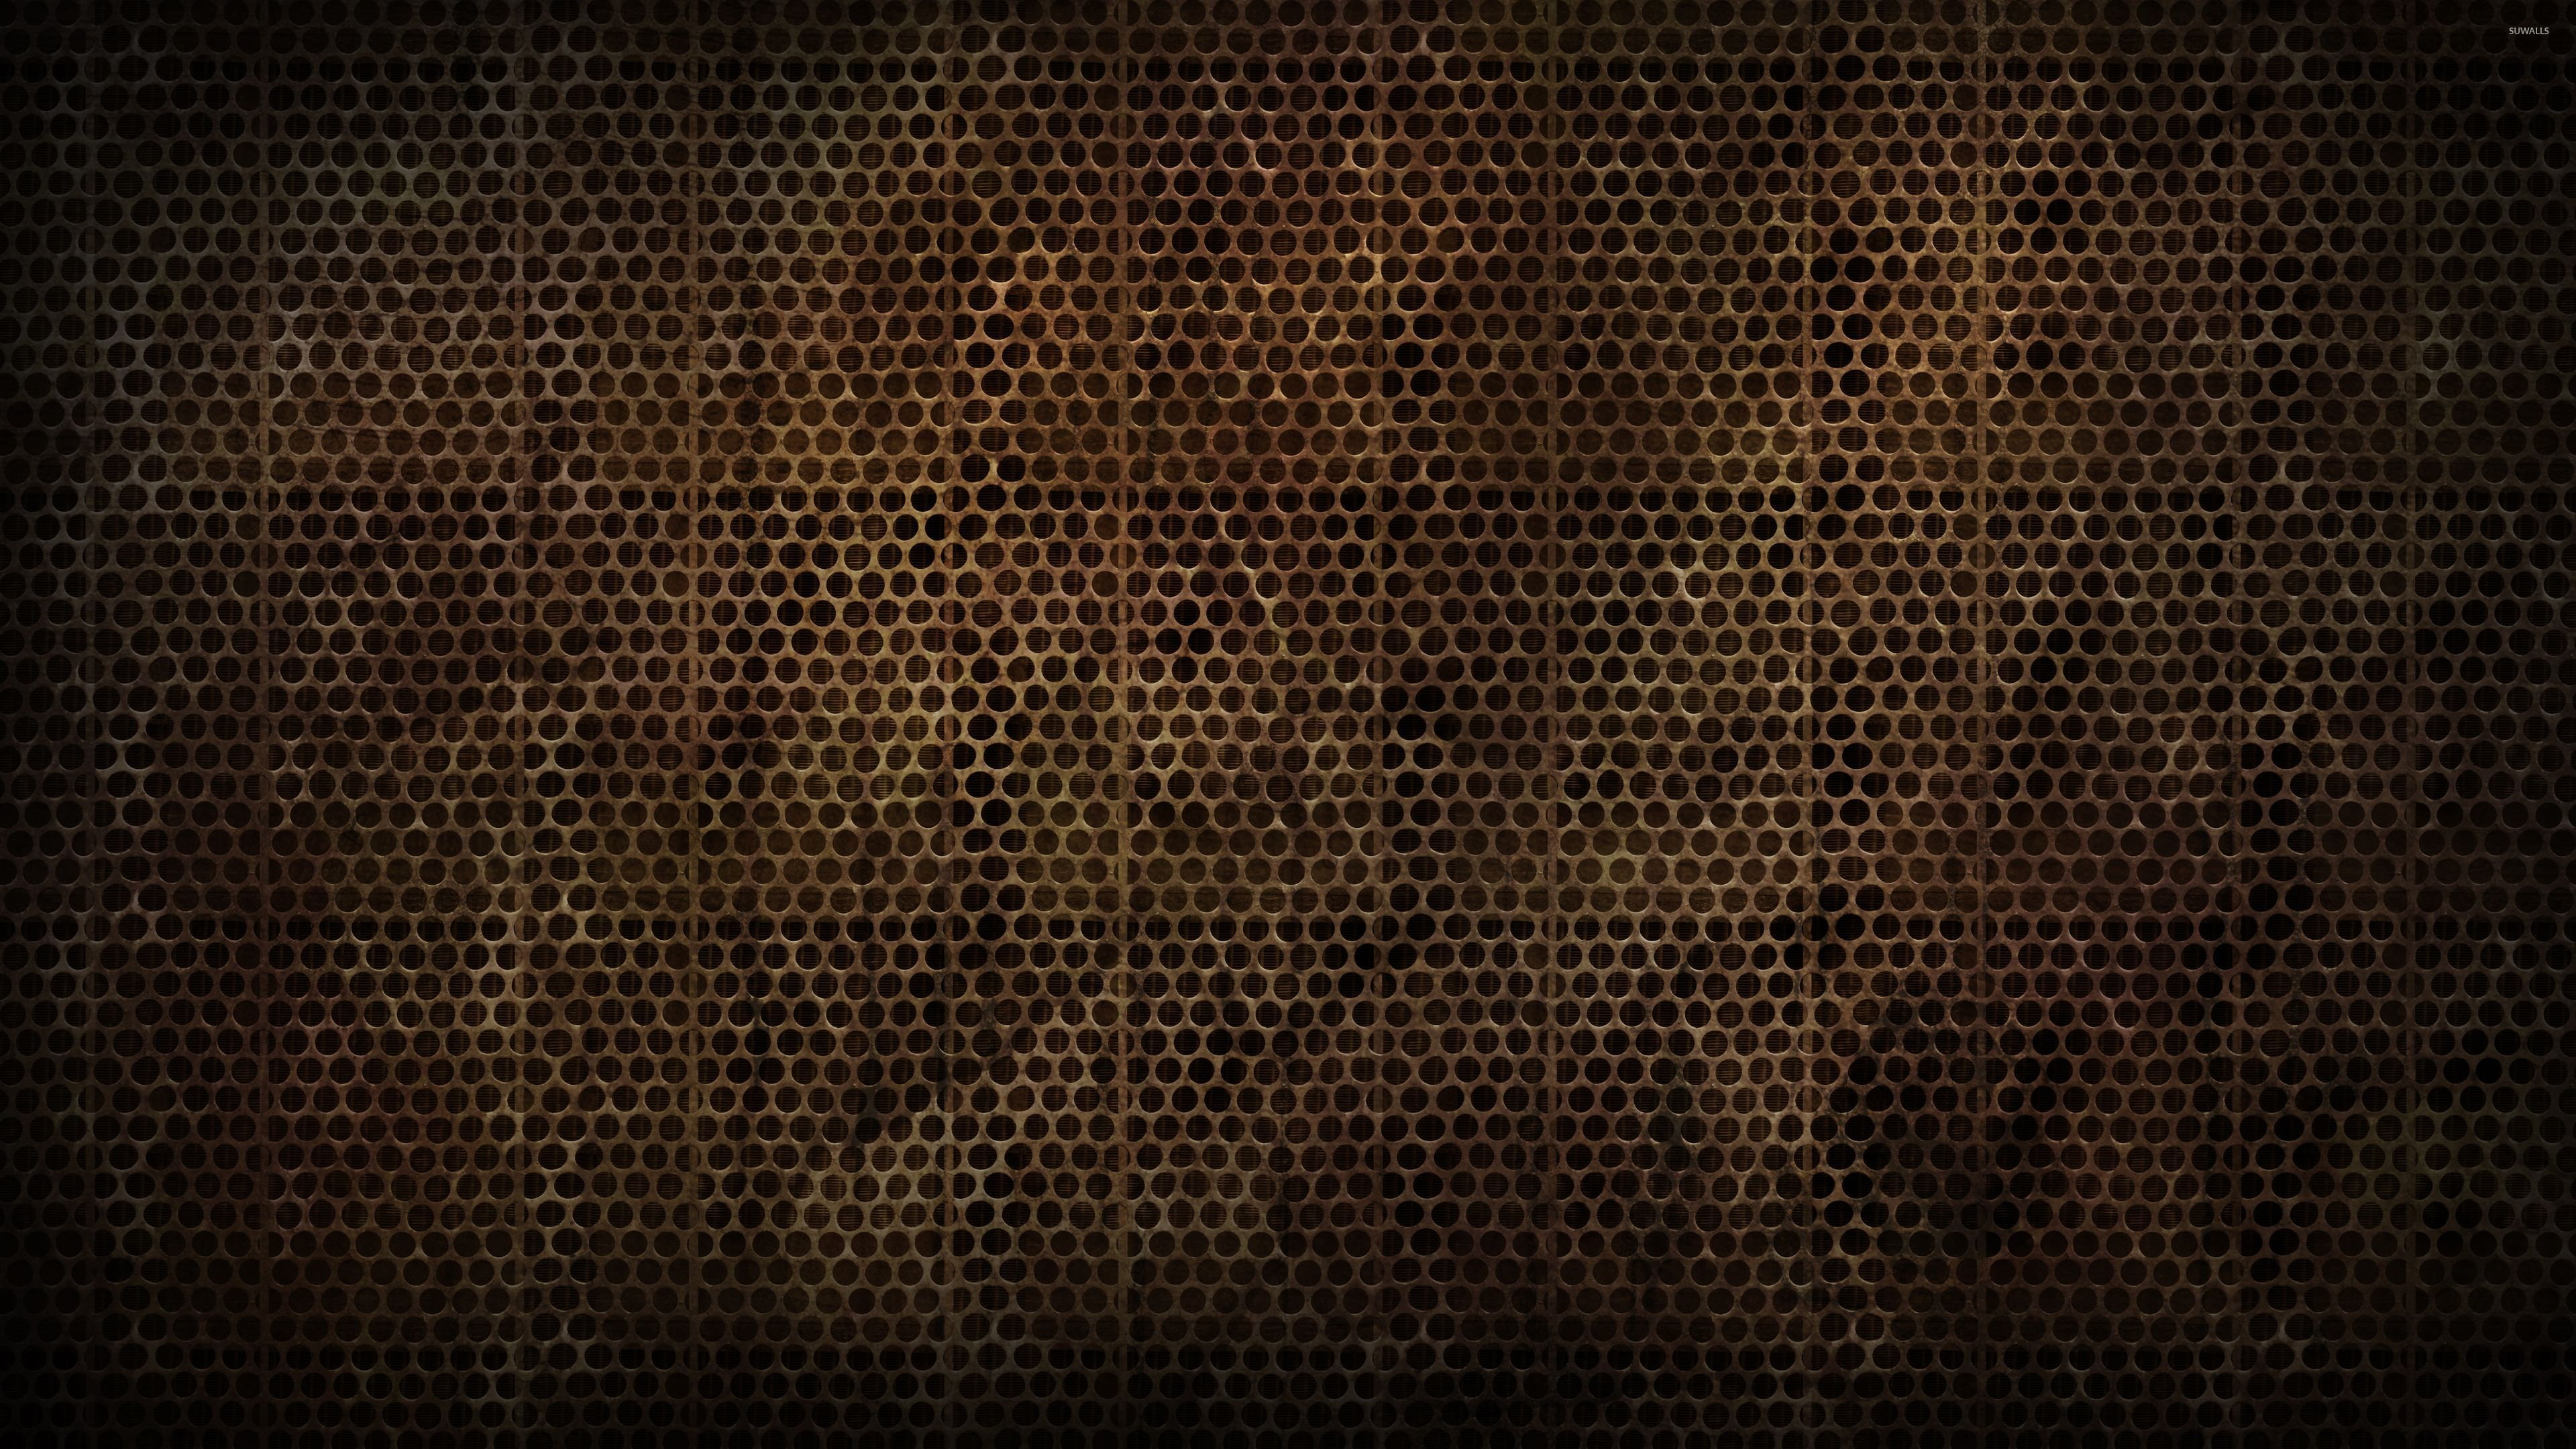 Brown metallic grid pattern wallpaper abstract for Metallic wallpaper